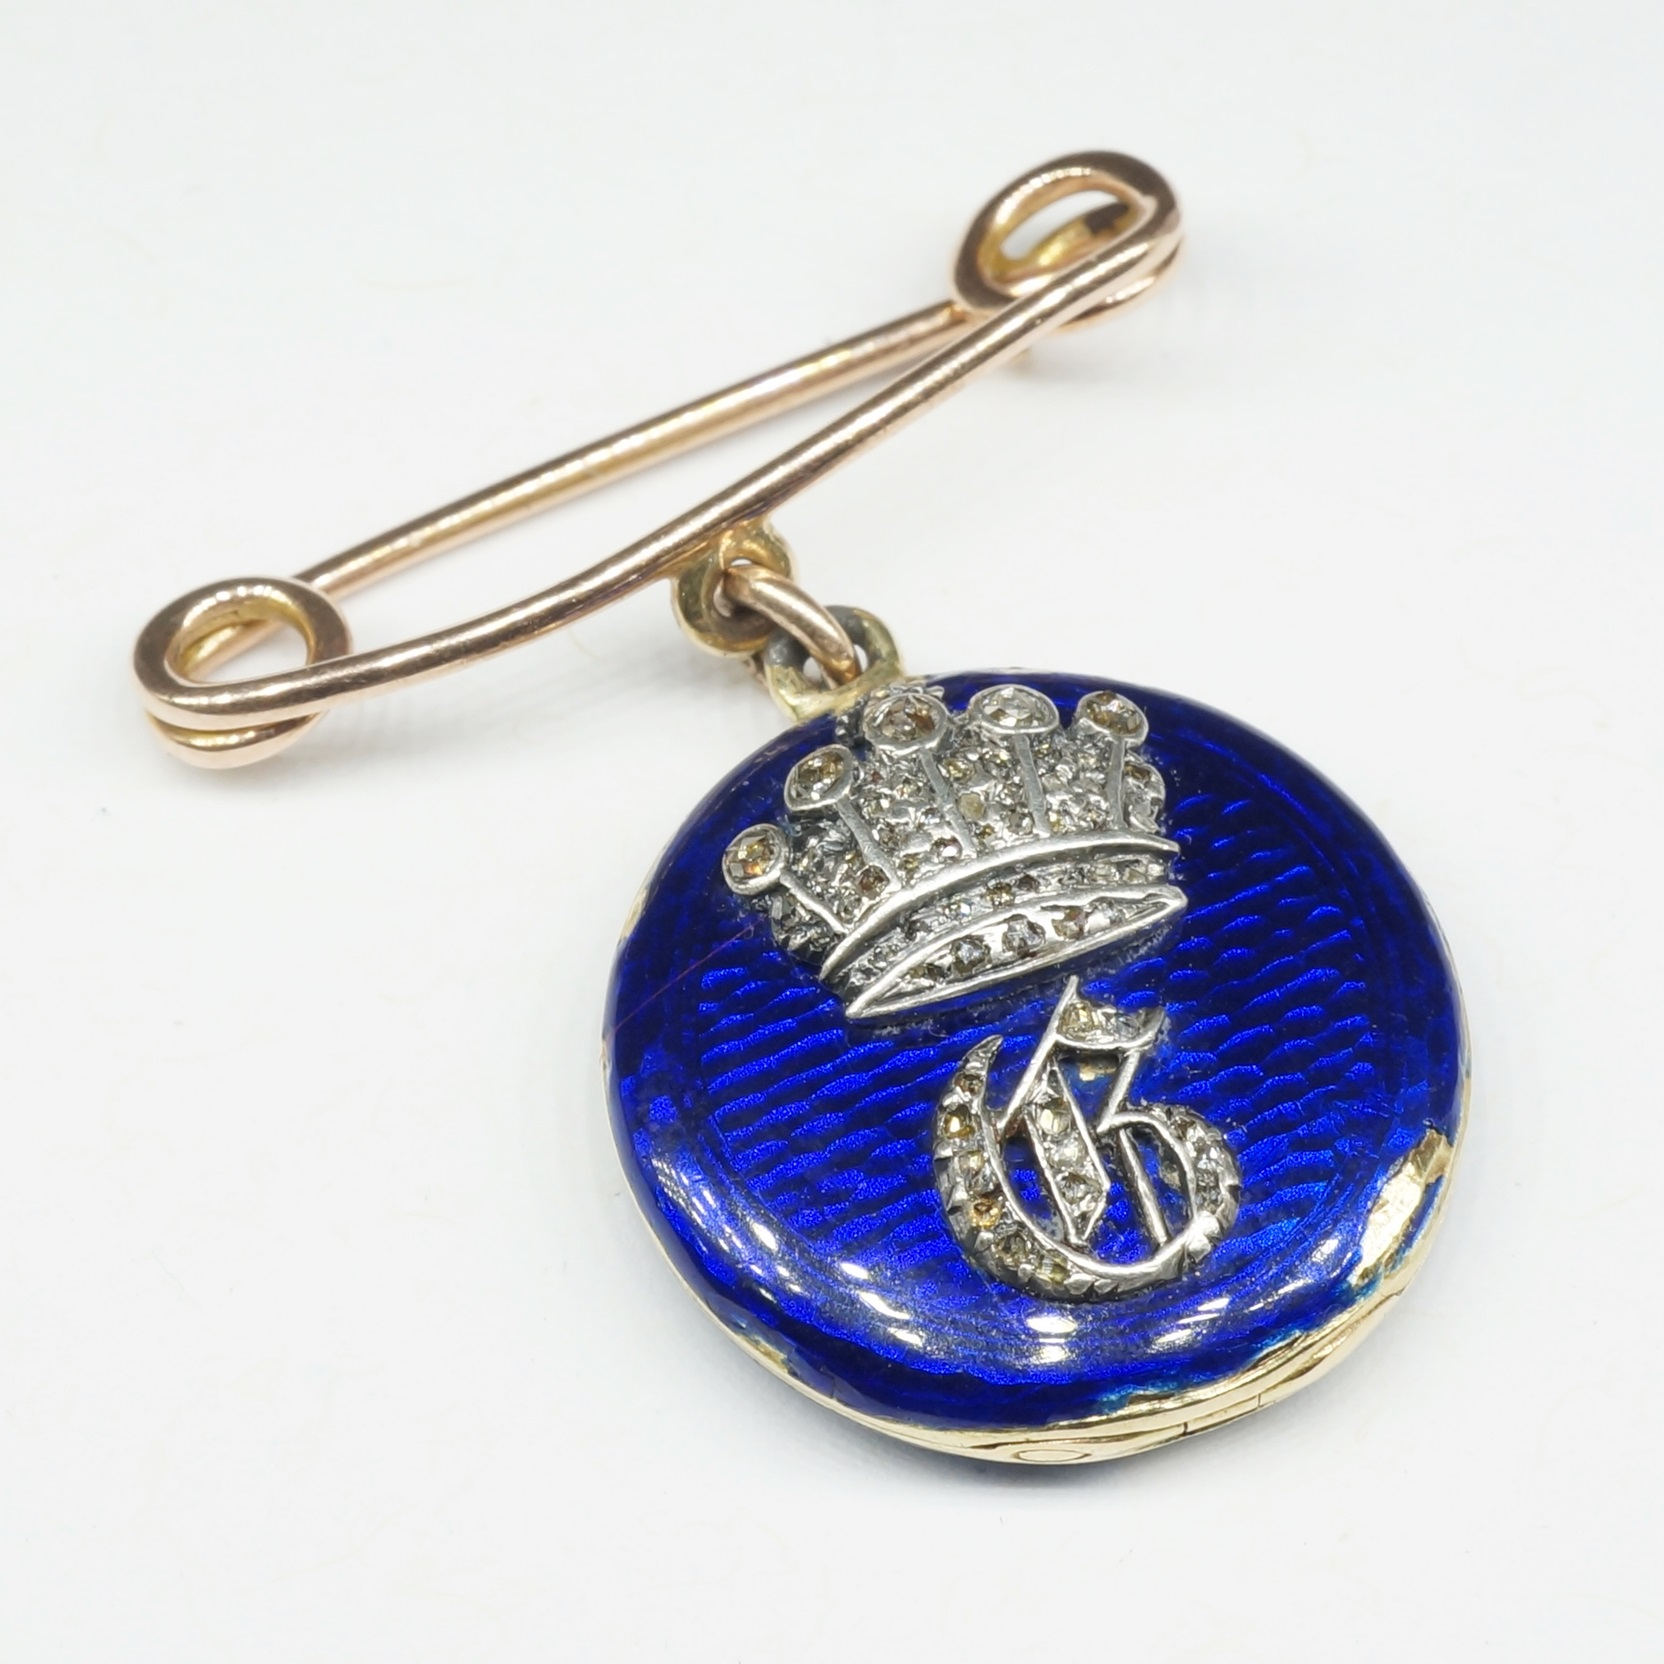 'Antique 15ct Yellow Gold Hinged Locket with Blue Enamelling and Raised Silver Crown With Pave Set with Off Round Rose Cut Diamonds'